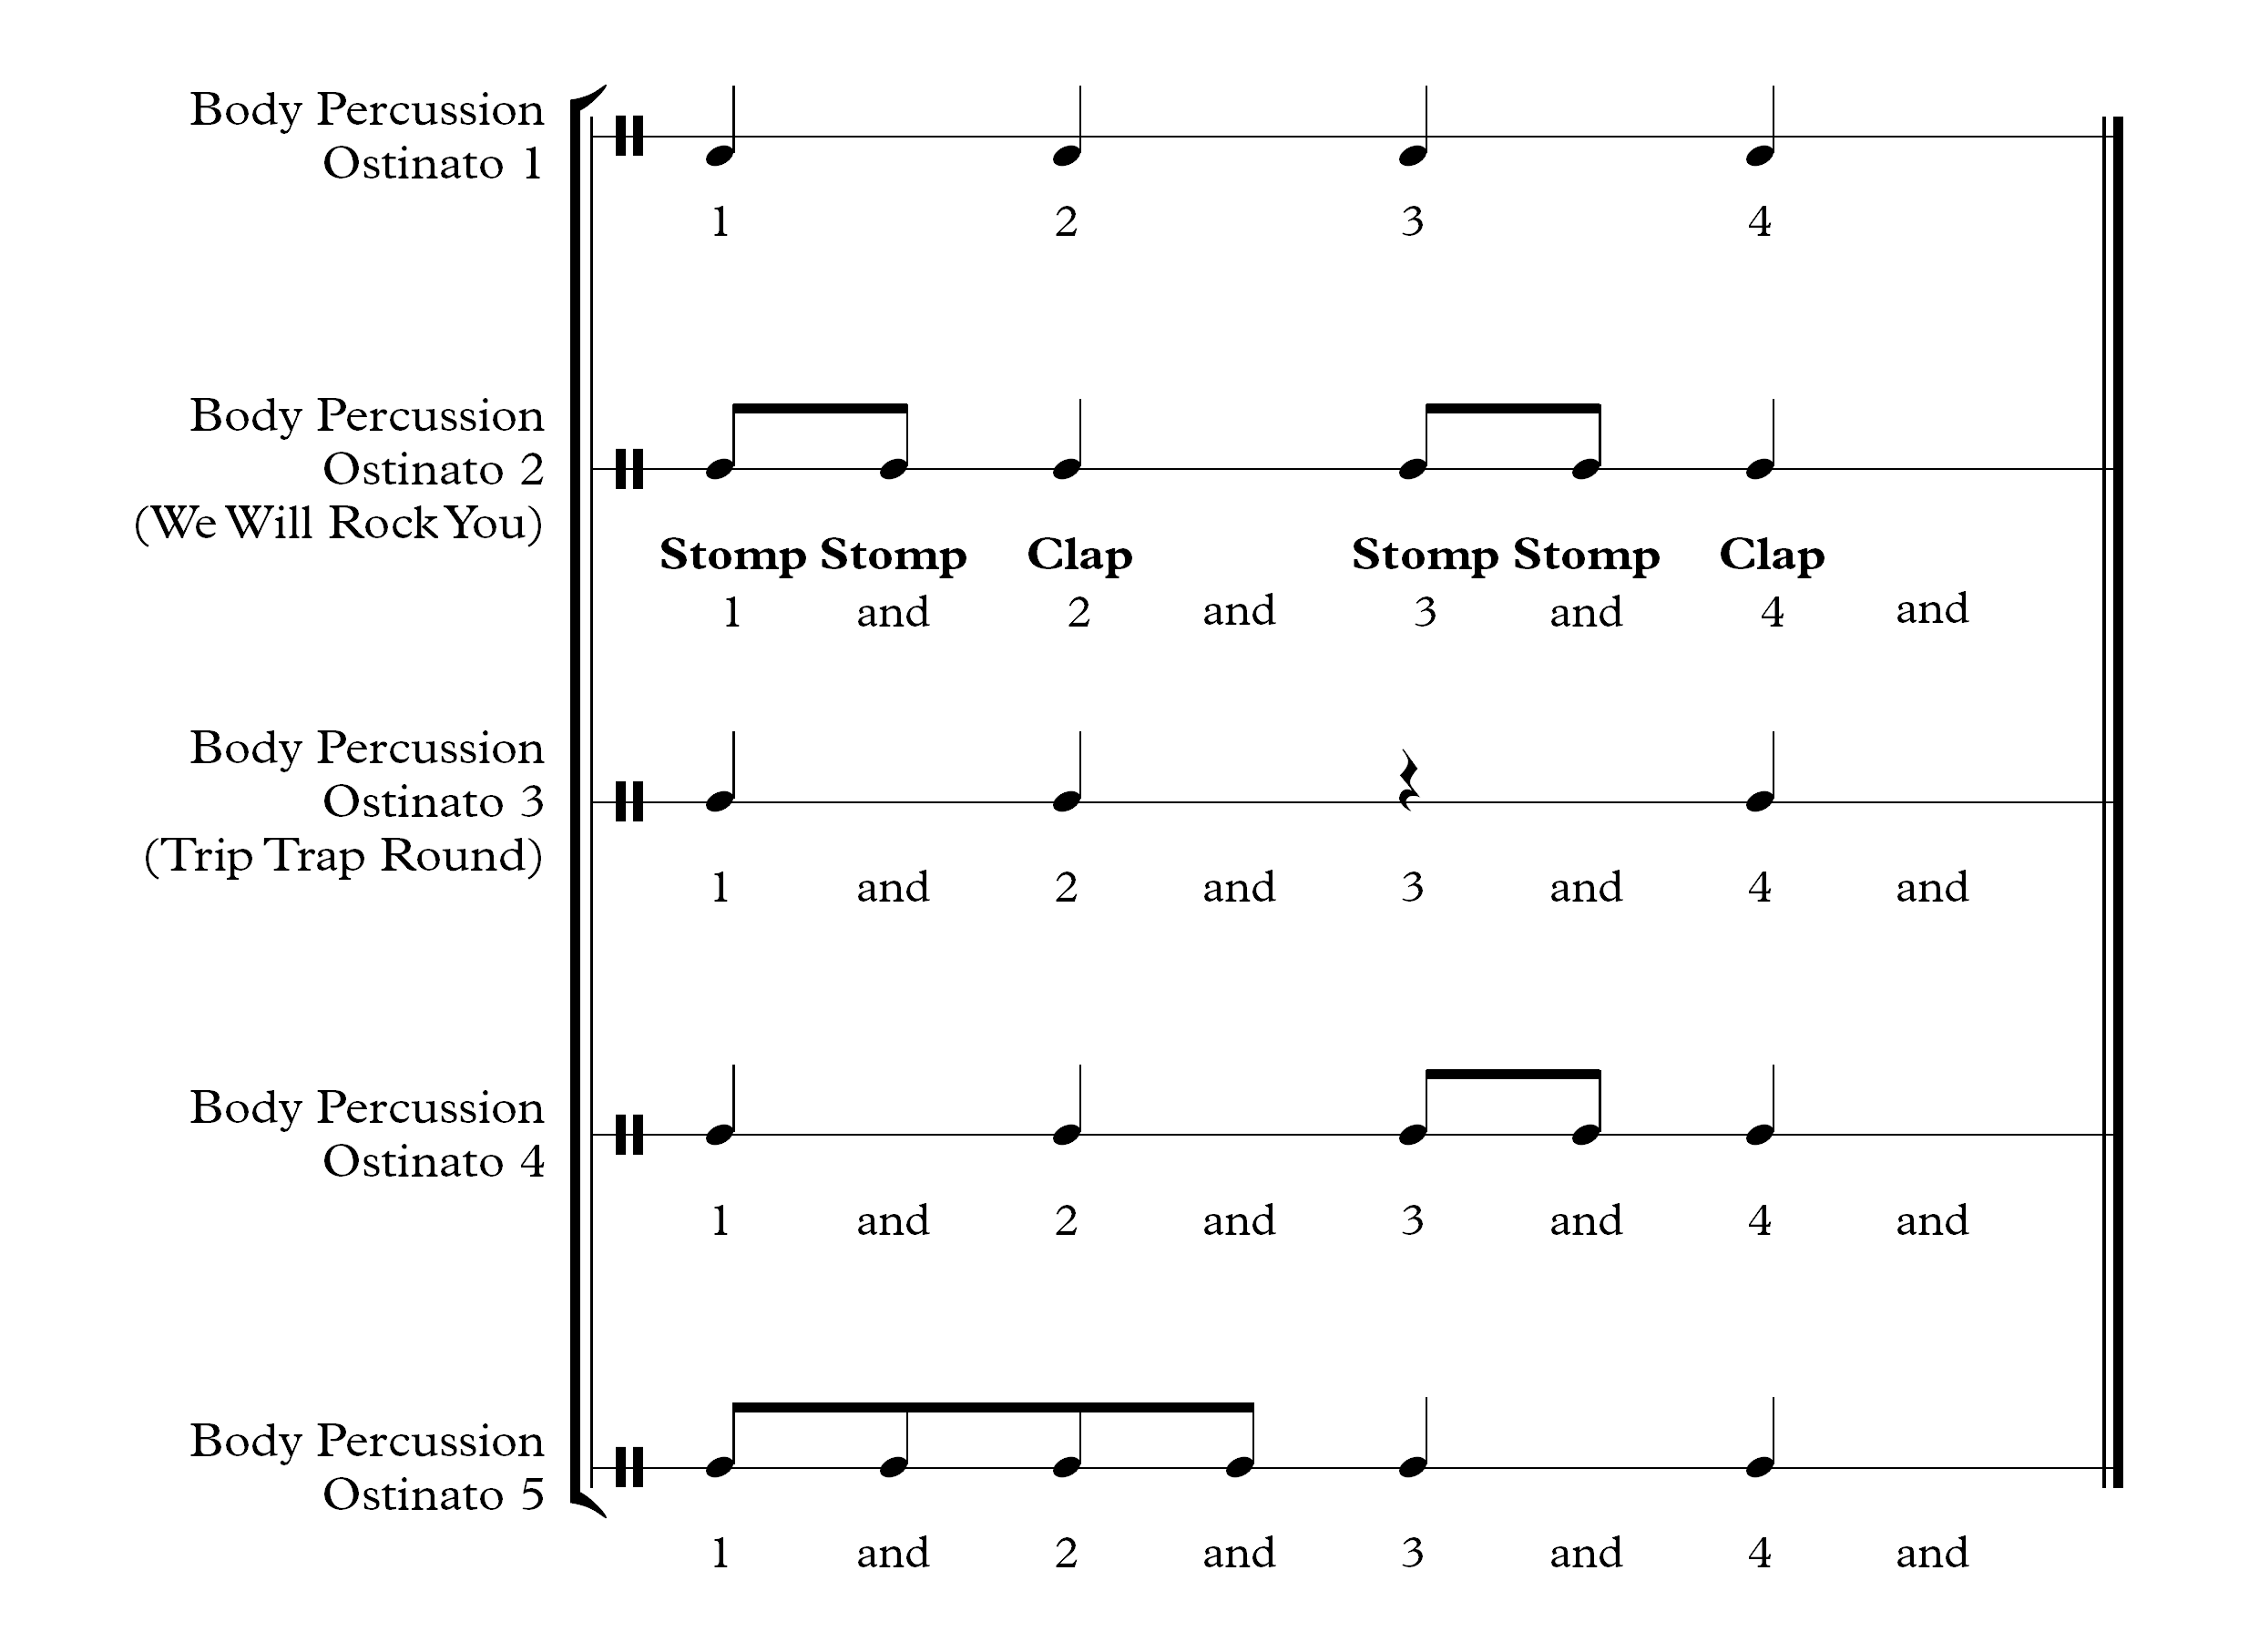 Body Percussion Images